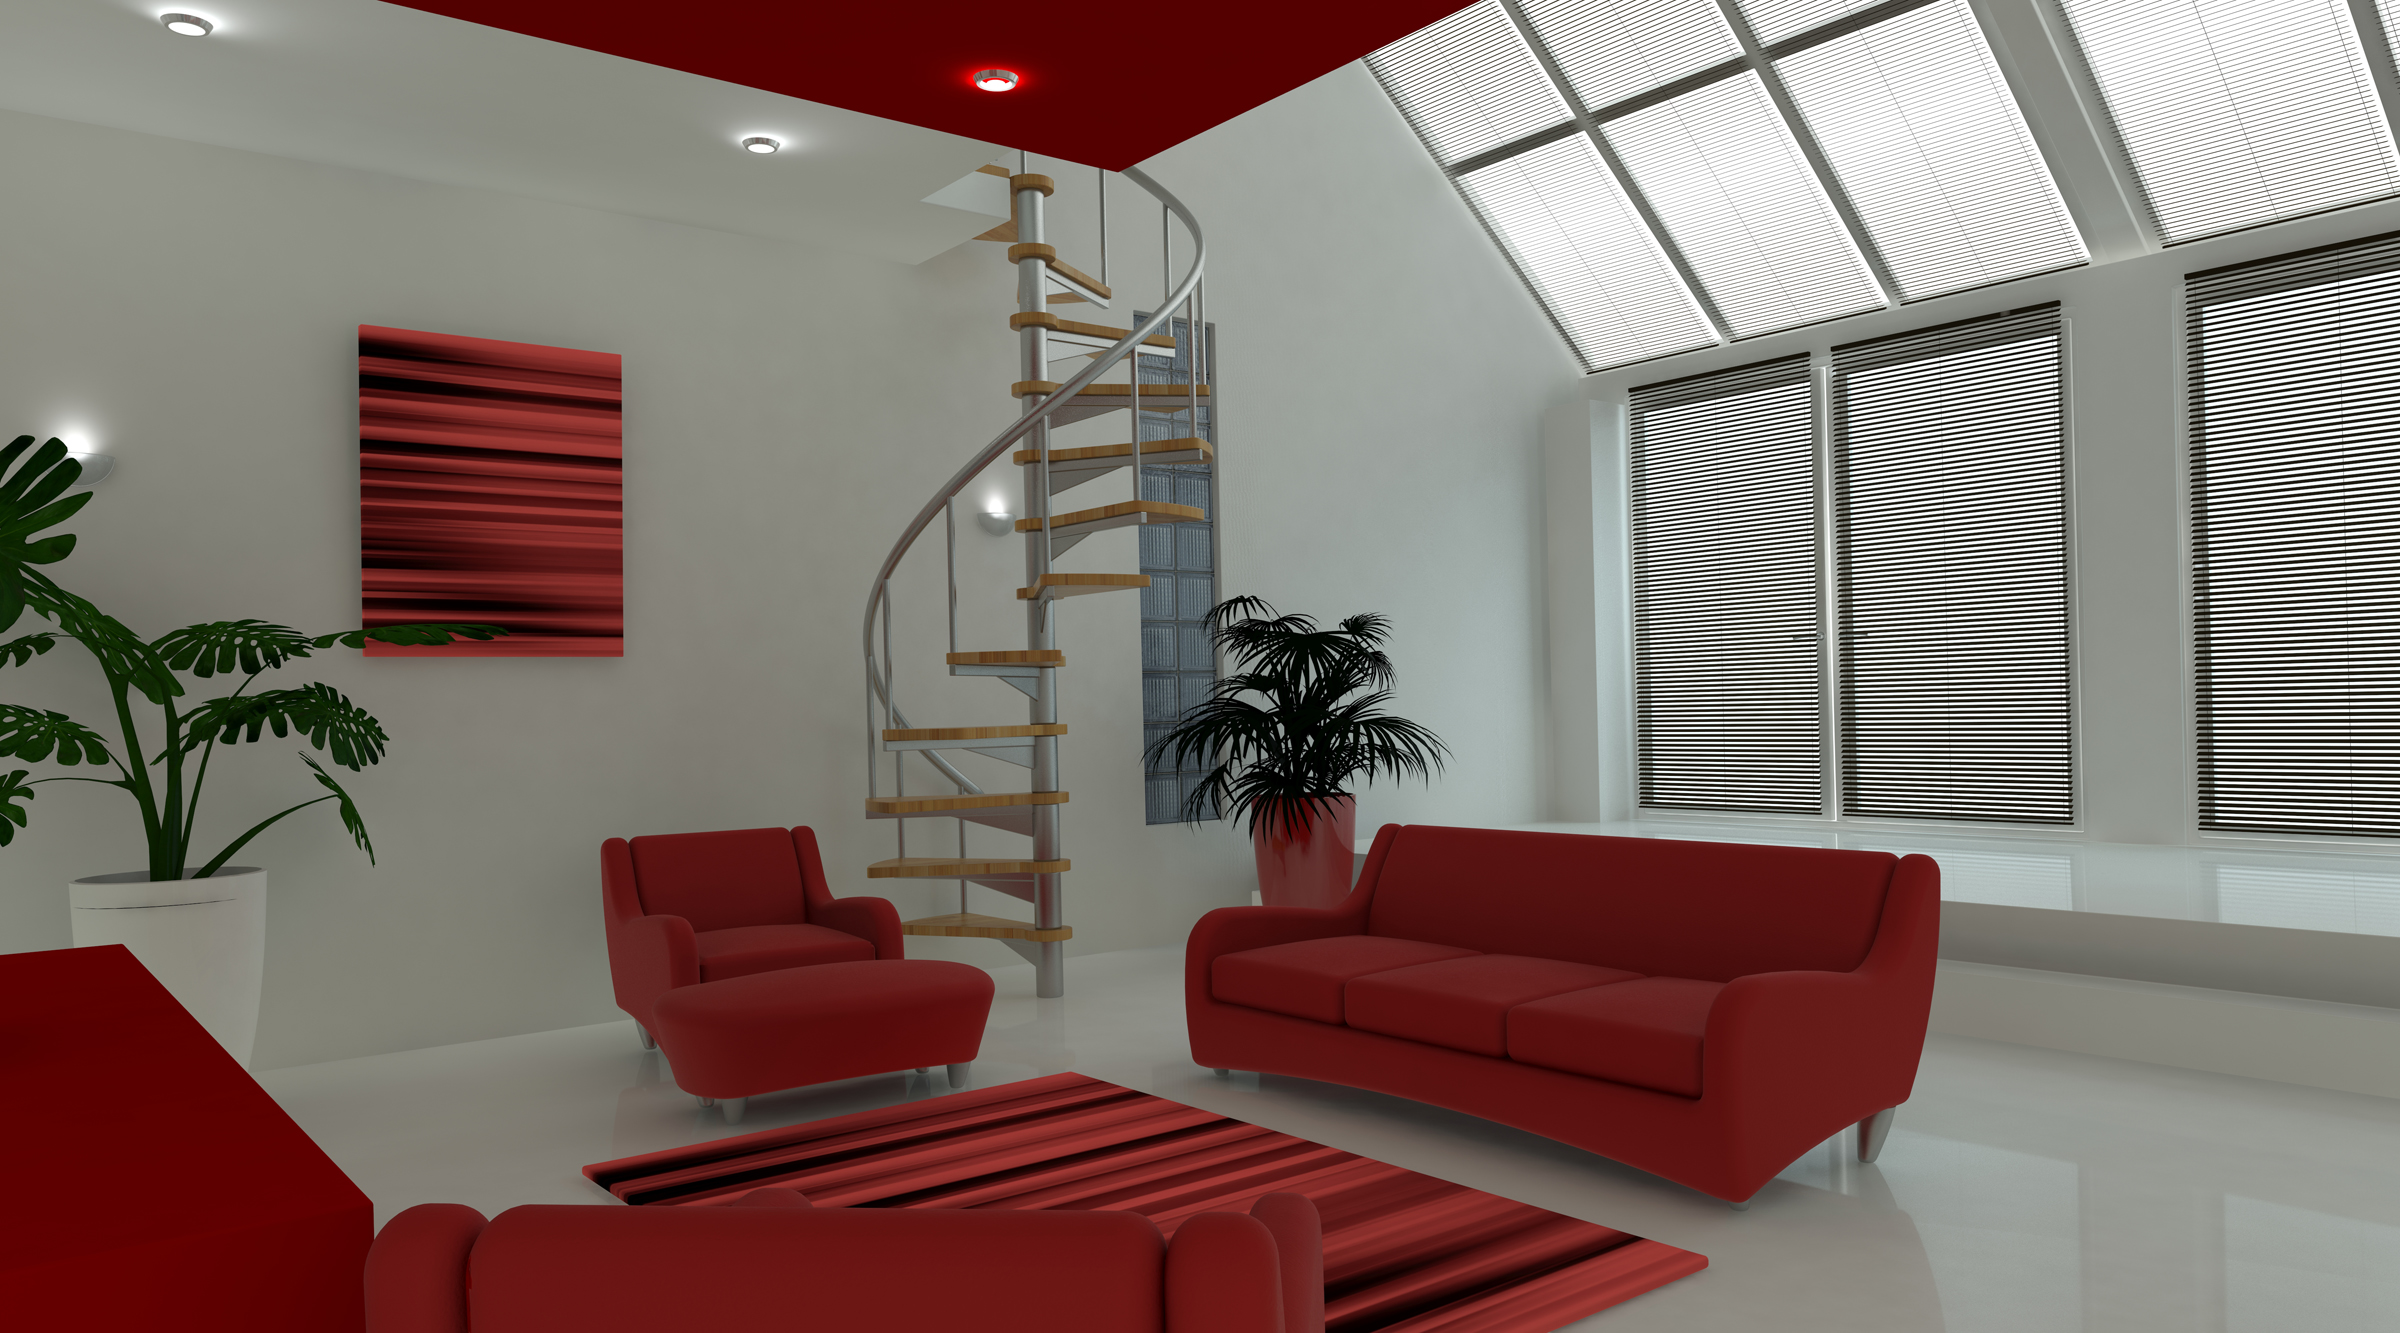 3d design of a room with stairs interior design marbella for Living room ideas 3d